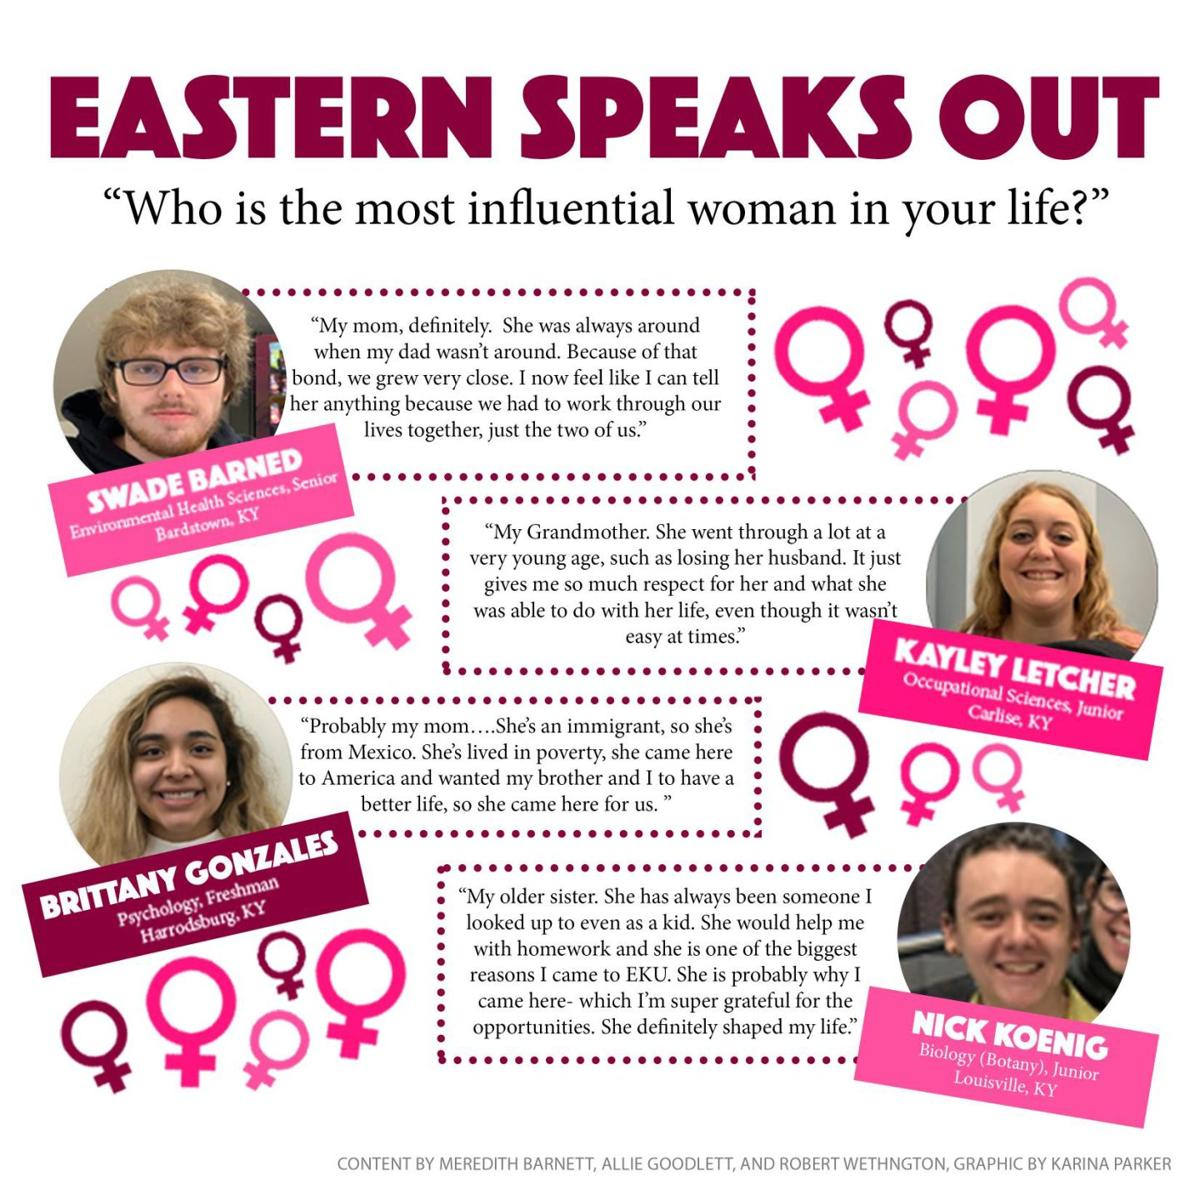 Eastern Speaks Out: Who is the most influential woman in your life?